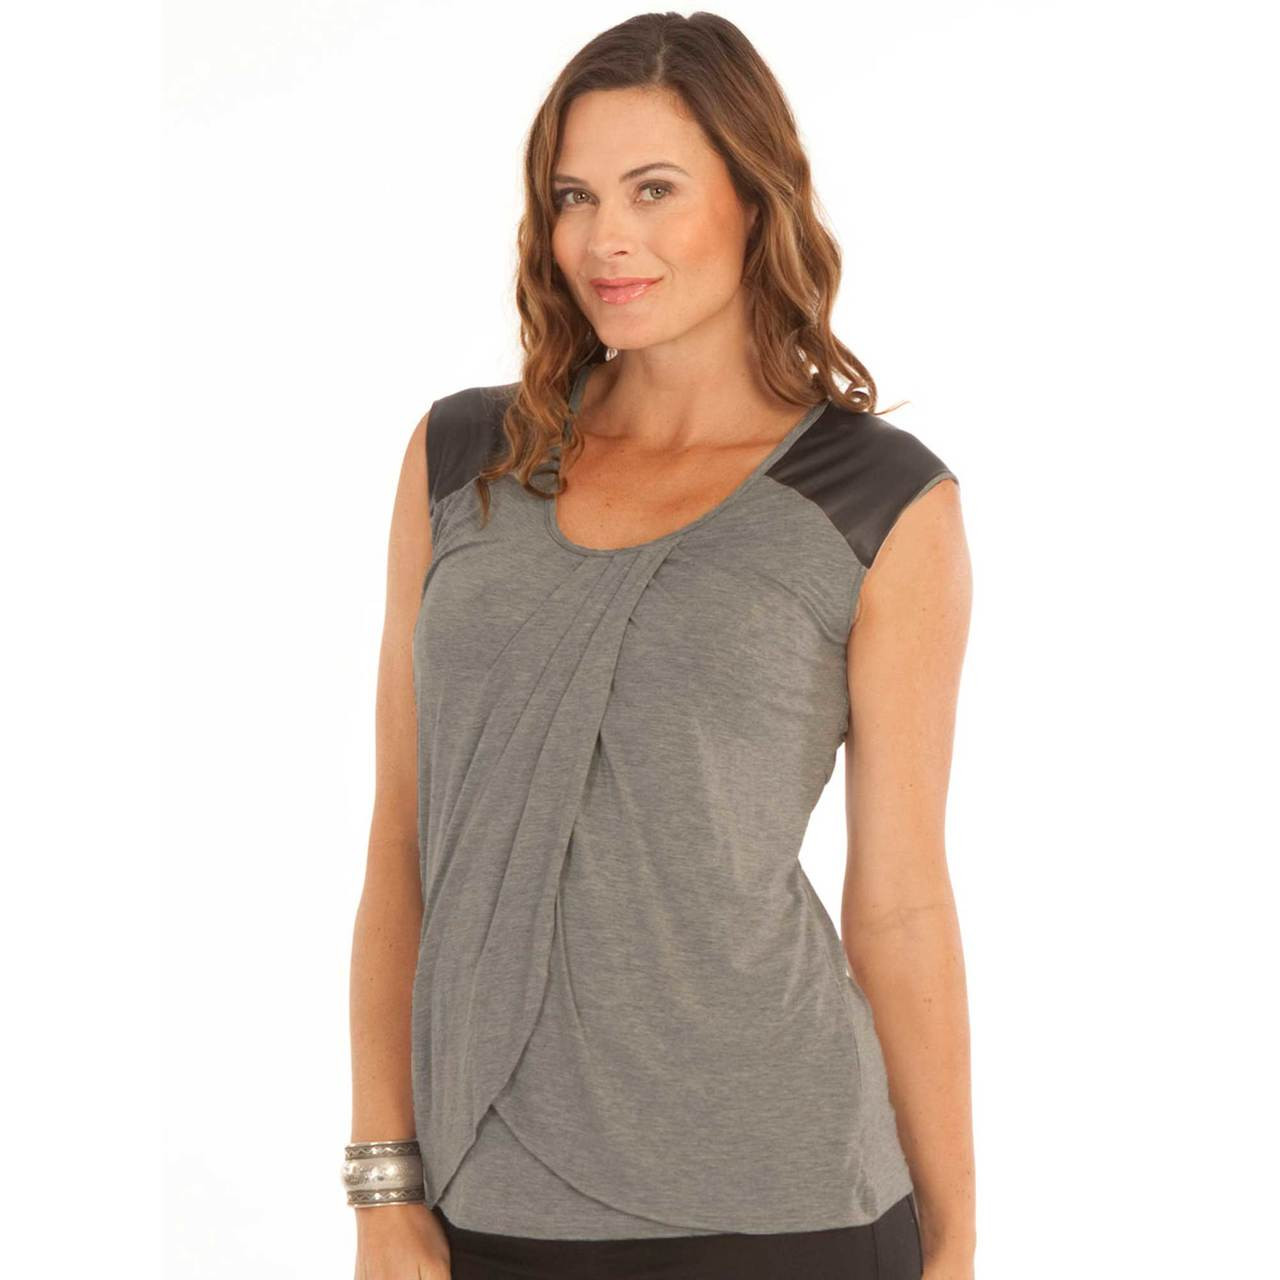 239a41365c2 Angel Maternity Petal Nursing Tank with Faux Leather. Breastfeeding ...